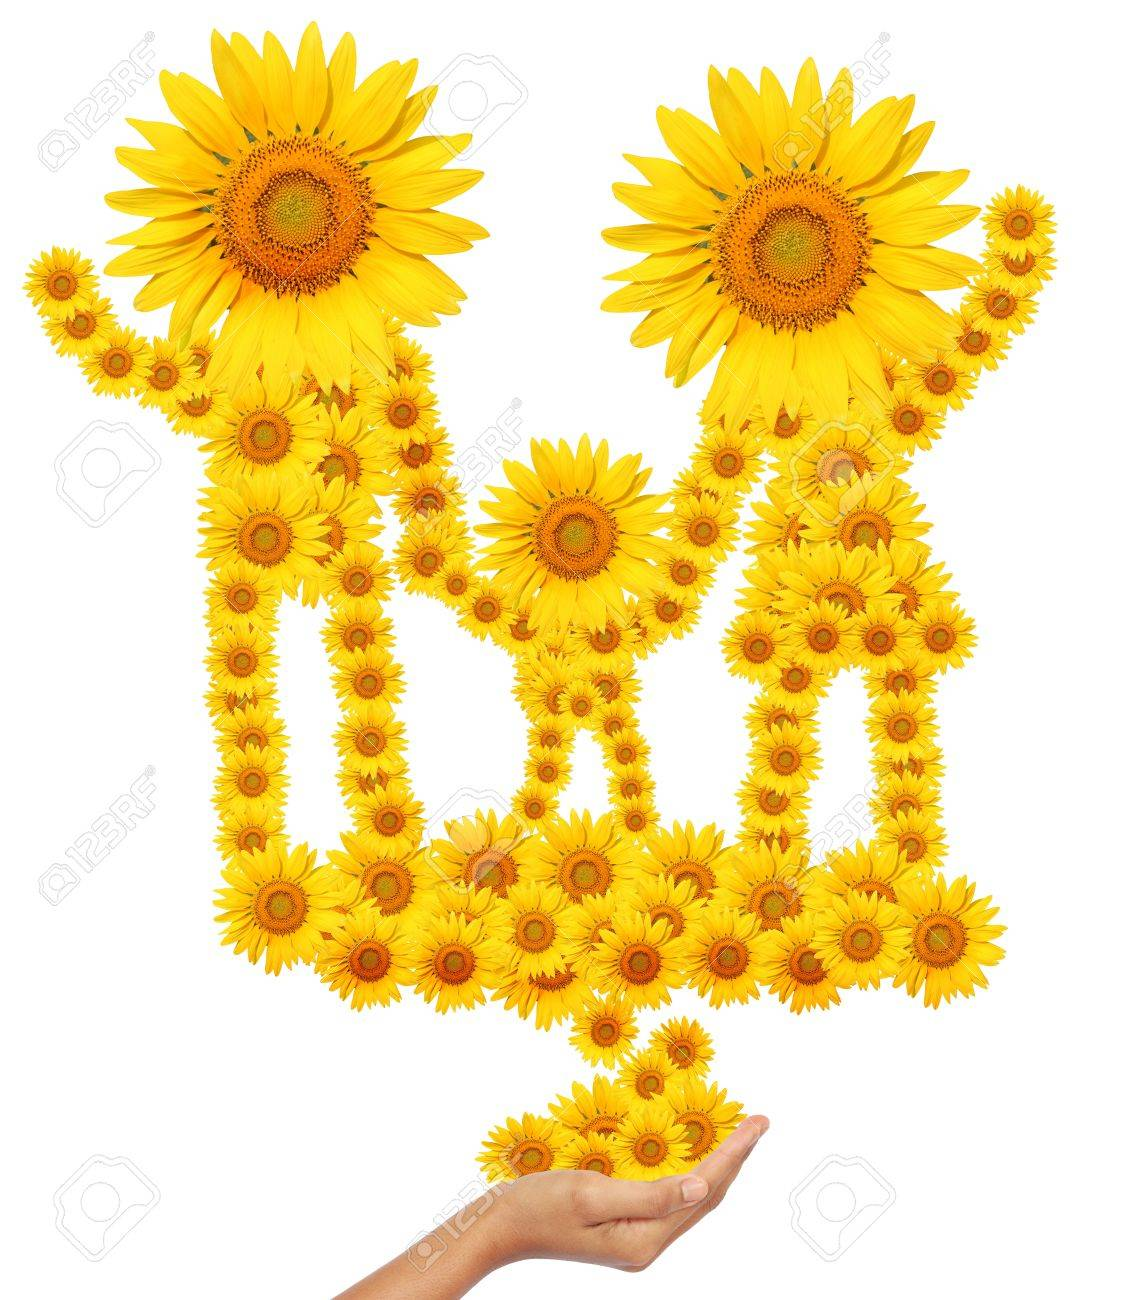 hand idea with sunflower family image isolate on white Stock Photo - 16068332